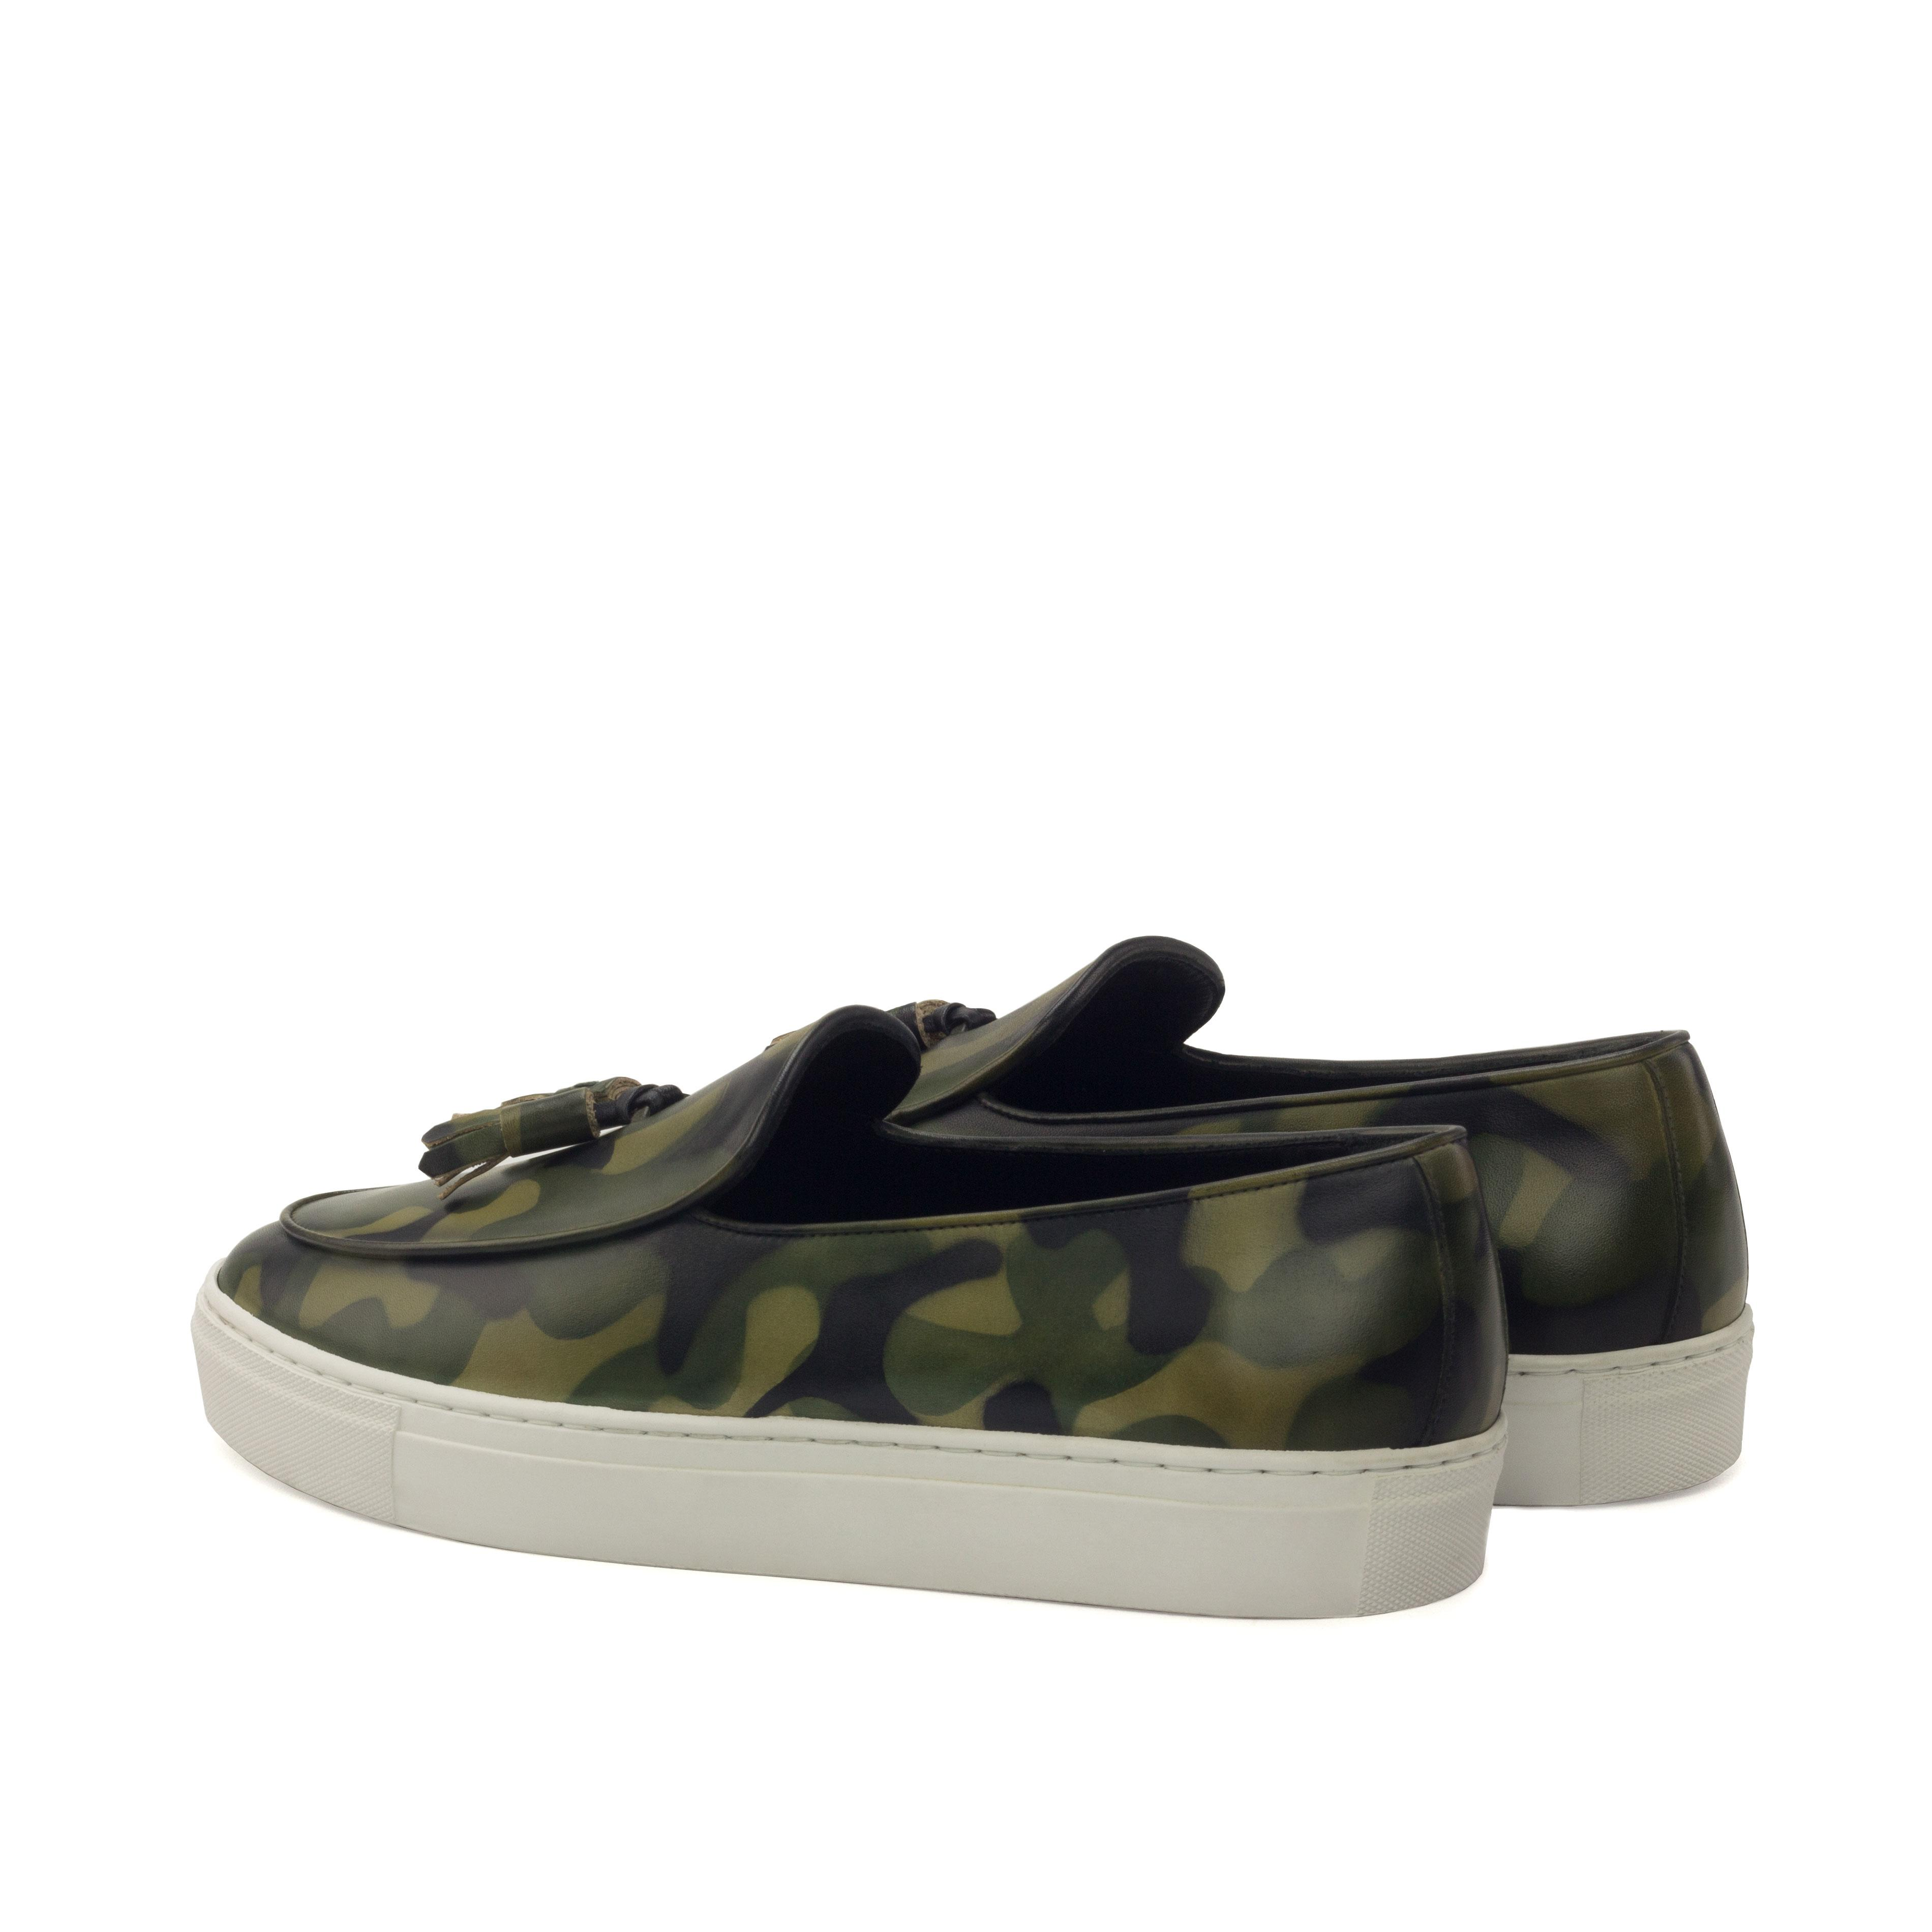 Manor of London 'The Dandy' Khaki Camo Patina Belgian Trainer Luxury Custom Initials Monogrammed Back Side View